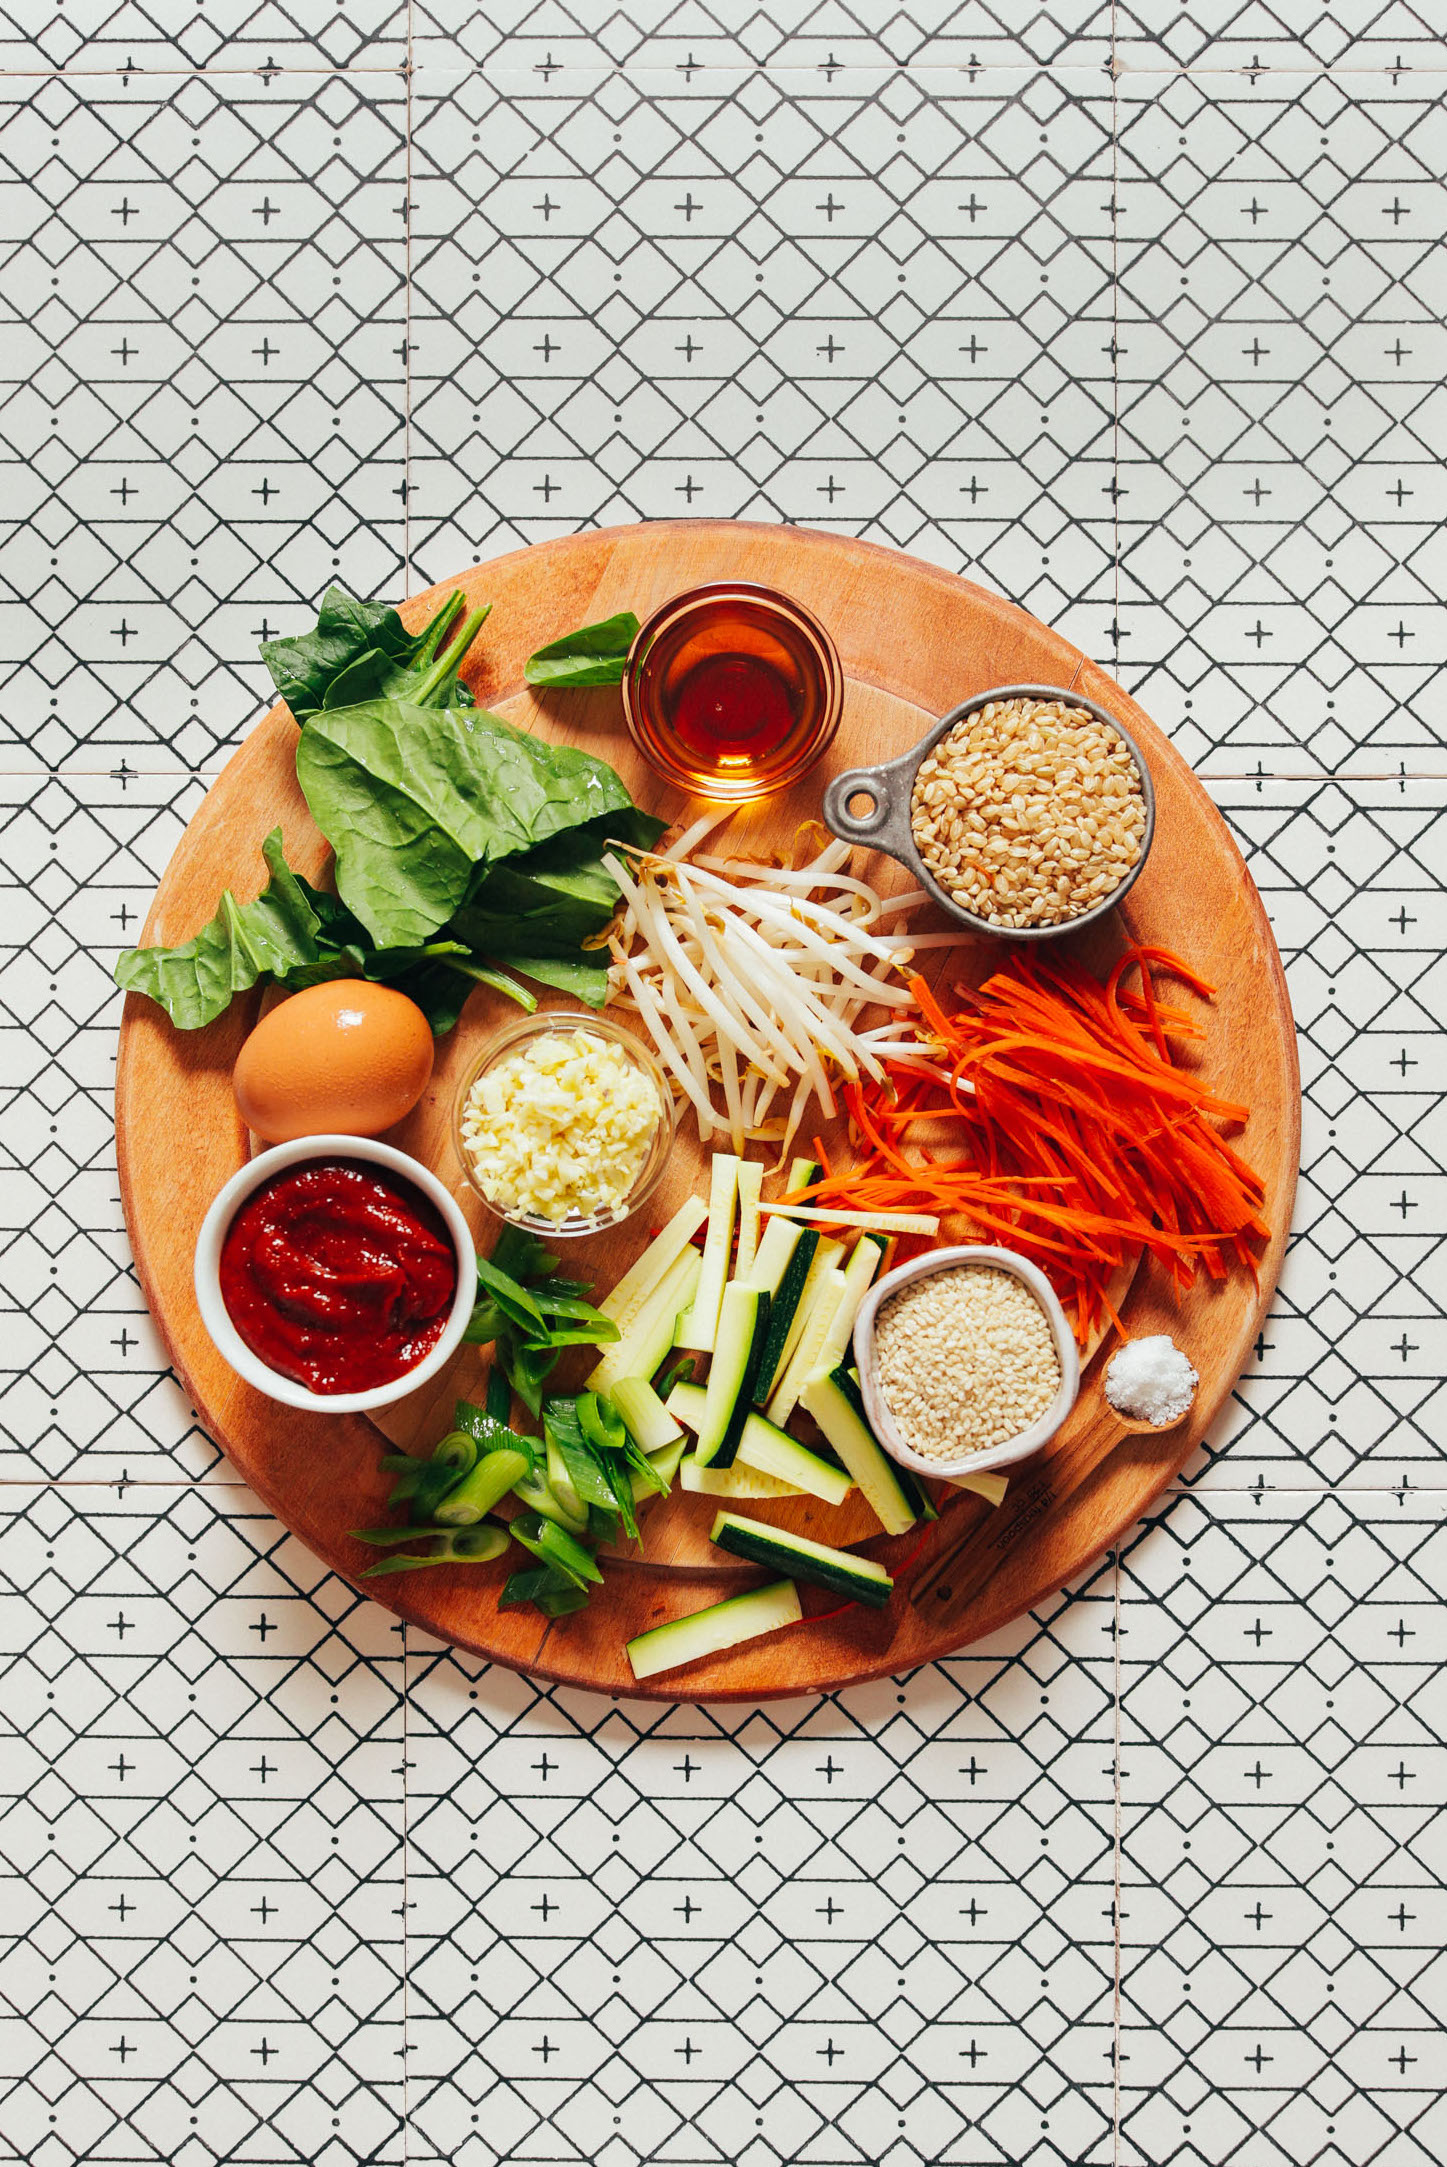 Wood cutting board with brown rice, vegetables, and an egg ready to show How to Make Korean Bibimbap